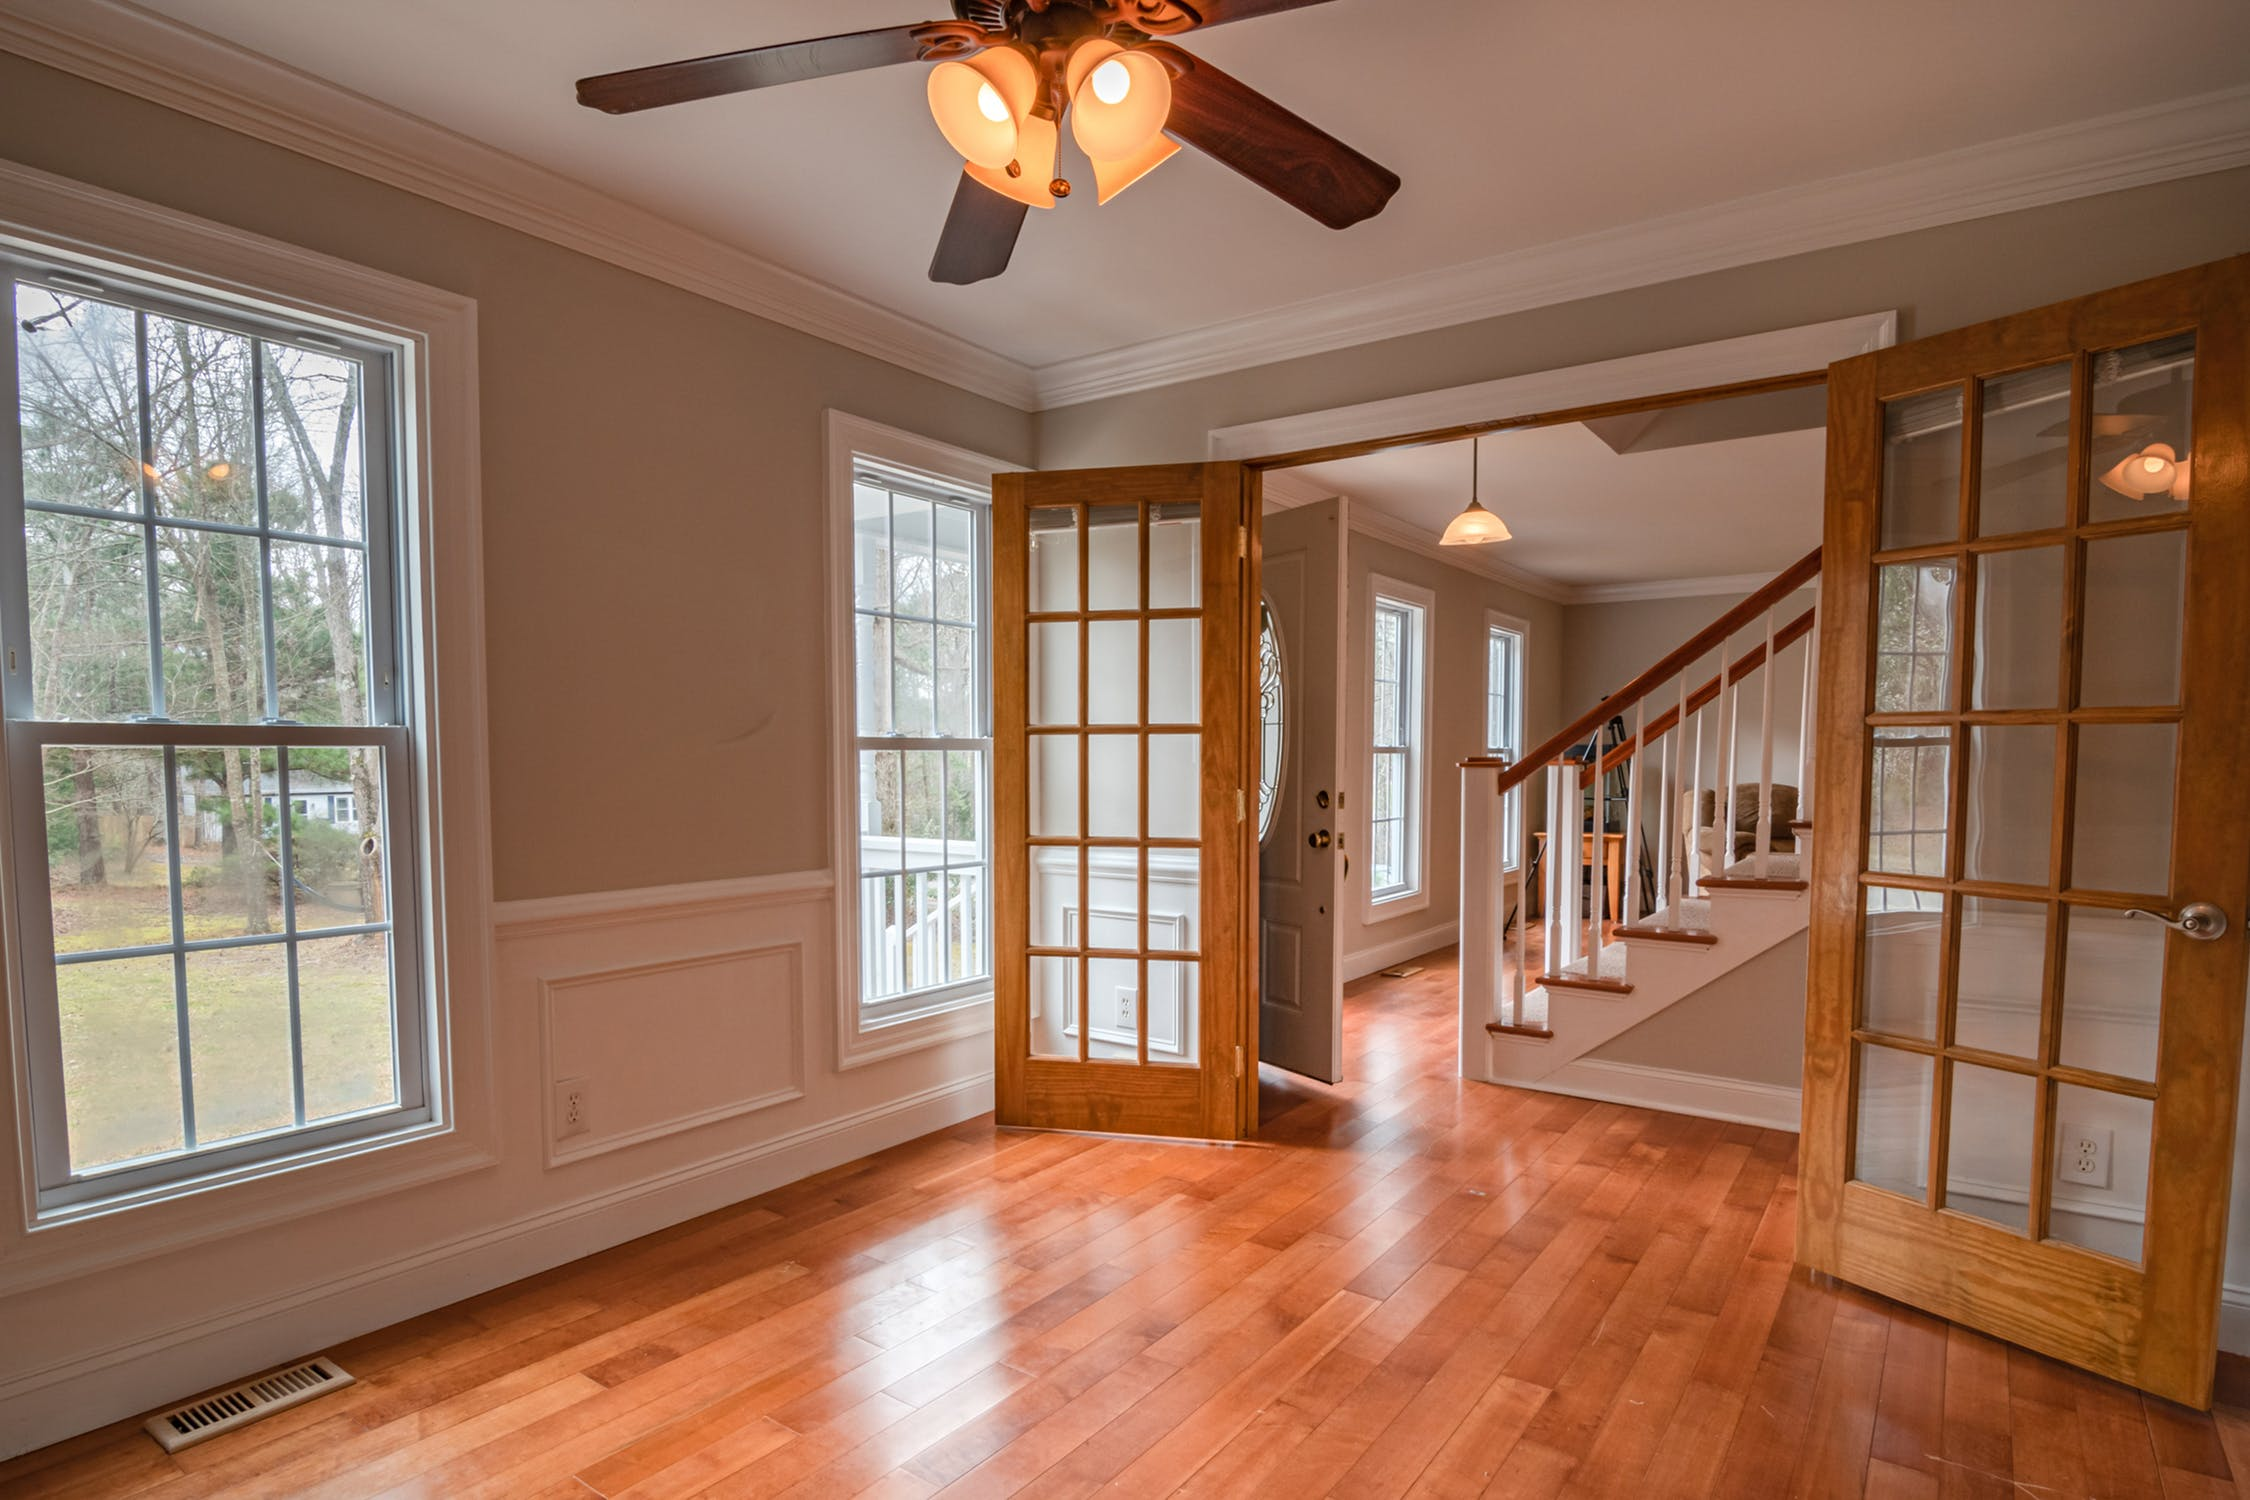 Pella Windows & Doors of New Jersey Offers Safe Solutions for Homeowners' Projects